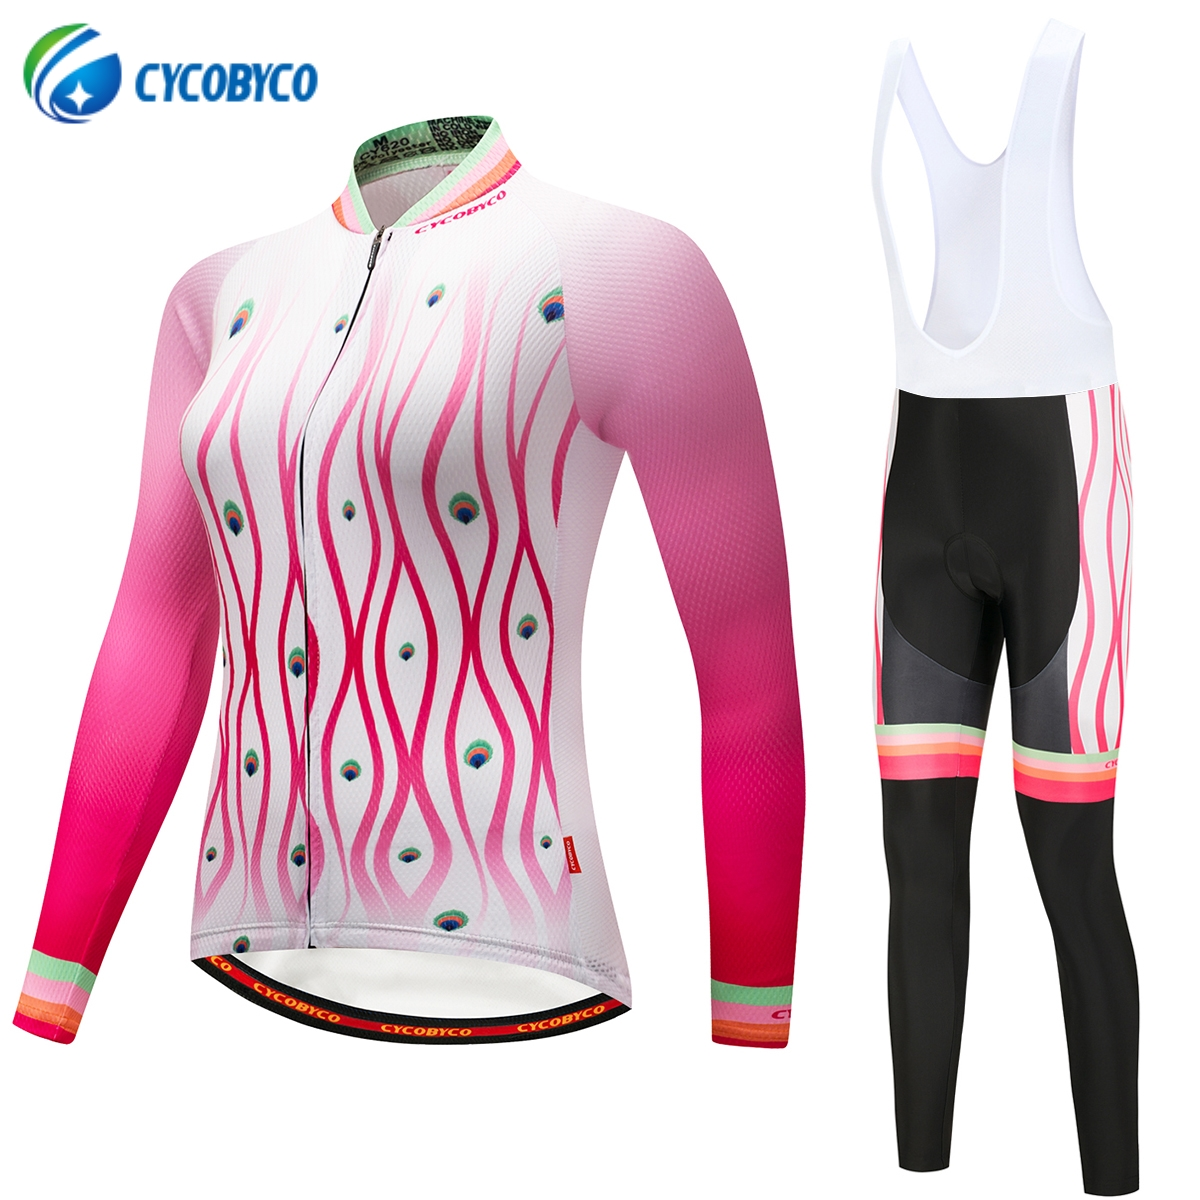 Cycobyco Autumn Womens Cycling Clothing 100% Polyester Bicycle Wear Ropa  Ciclismo Cycling Clothes Cycling Jersey Set Peacock fb54ab3a7